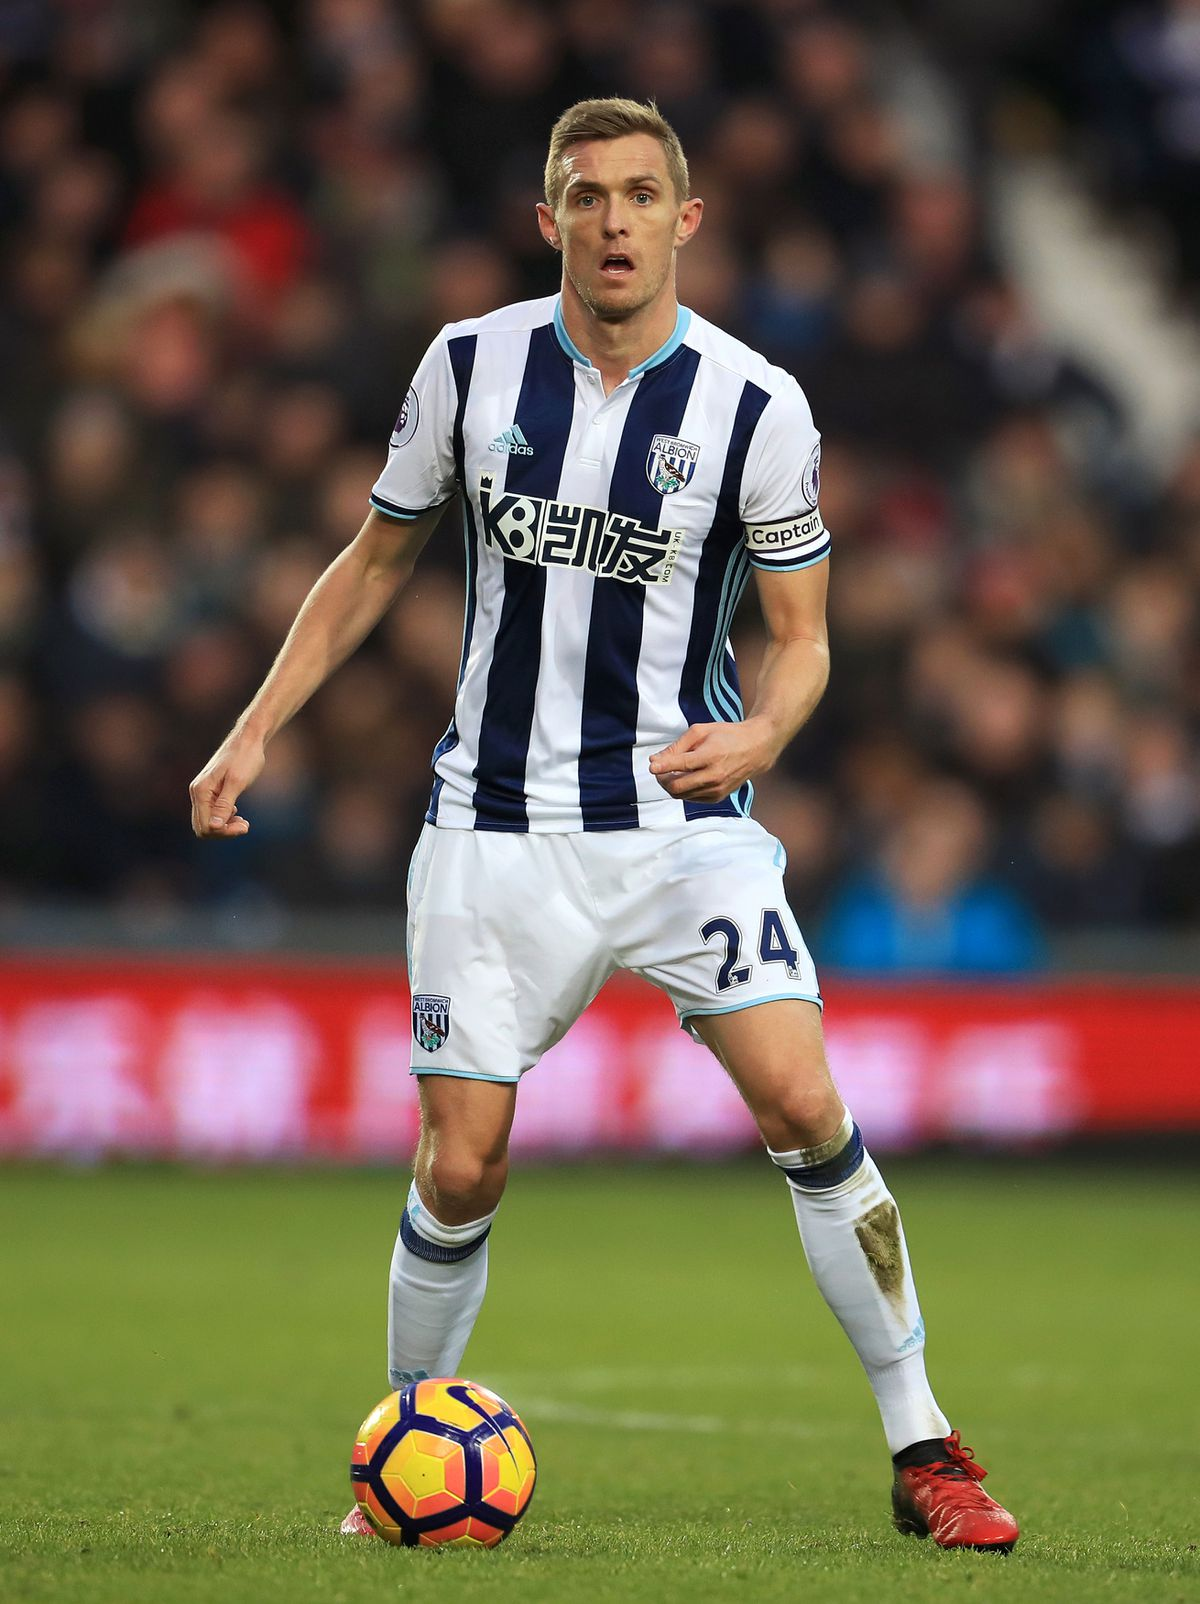 File photo dated 02-01-2017 of West Bromwich Albion's Darren Fletcher. PRESS ASSOCIATION Photo. Issue date: Wednesday April 26, 2017. West Brom captain Darren Fletcher is ready to put contract talks on hold until the summer. See PA story SOCCER West Brom. Photo credit should read Mike Egerton/PA Wire.